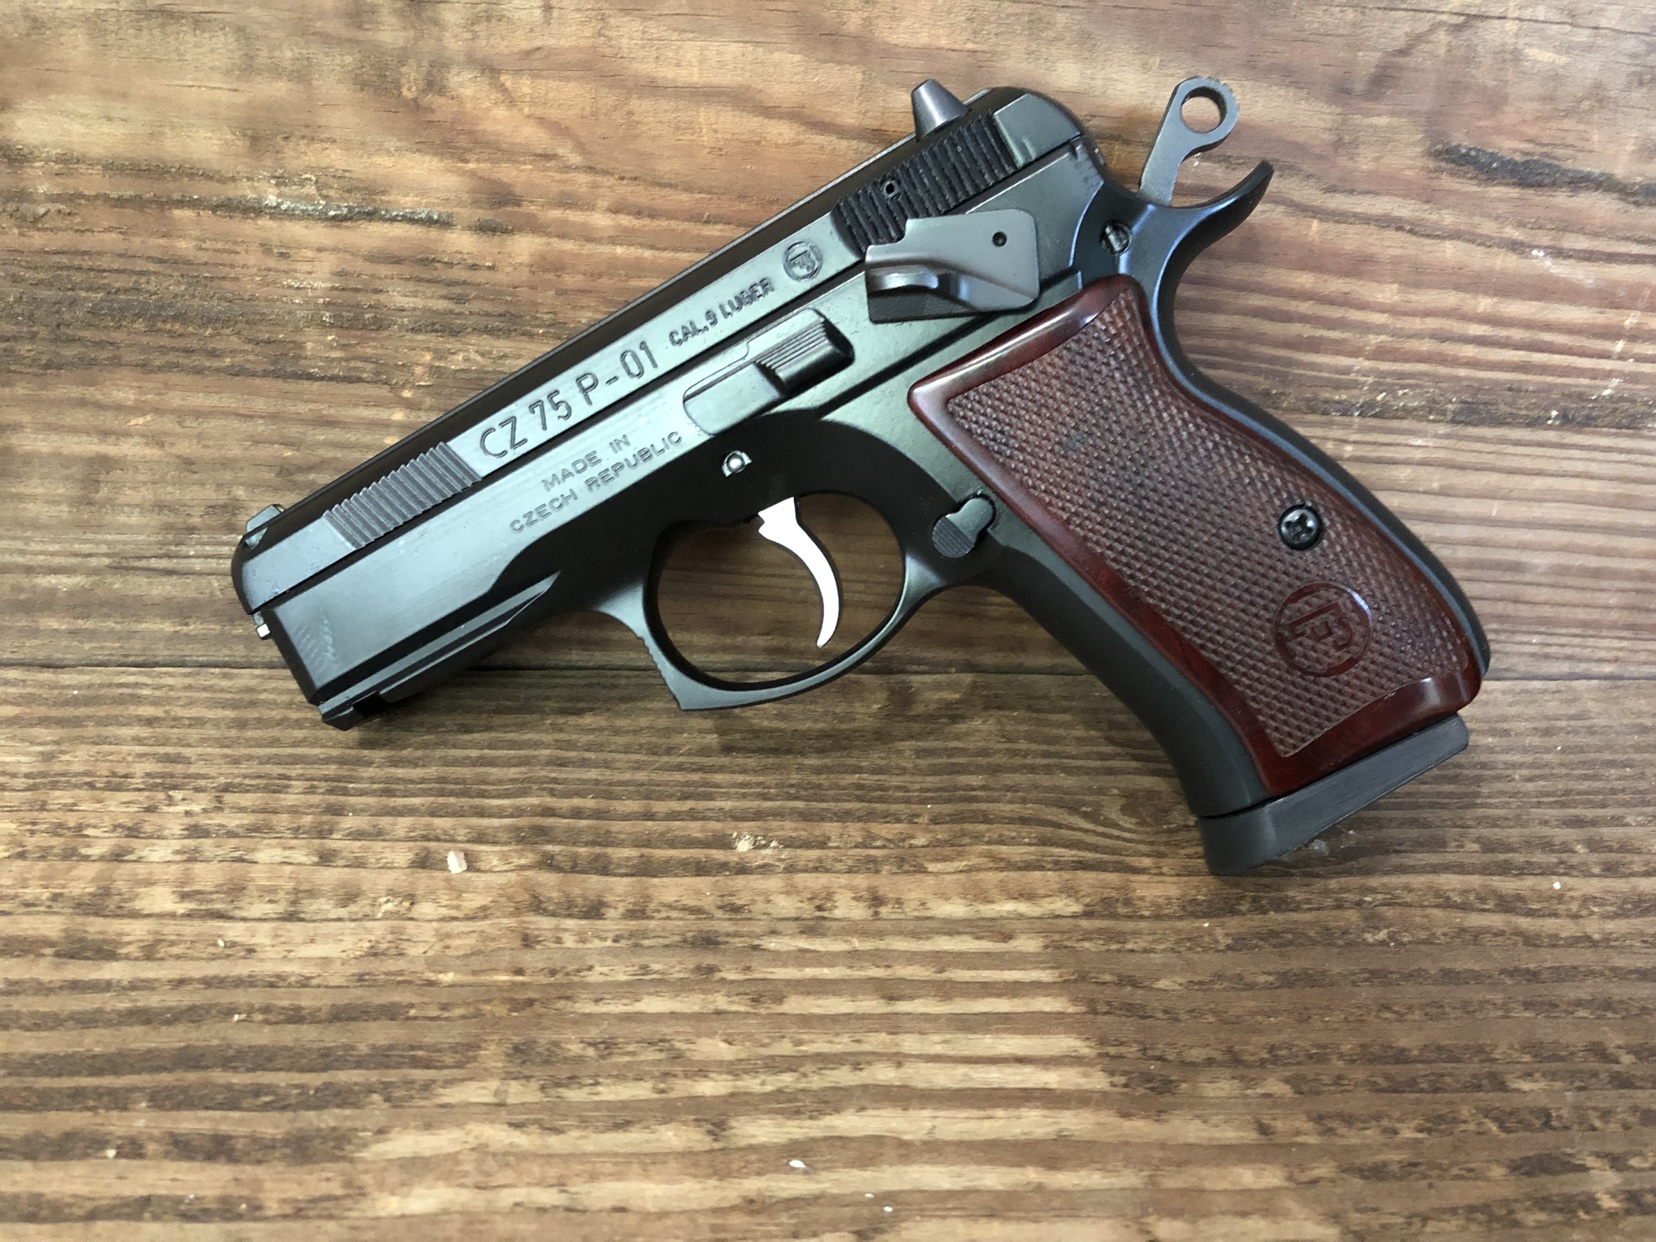 Cz 75 P01 99041 | Mississippi Gun Owners - Community for